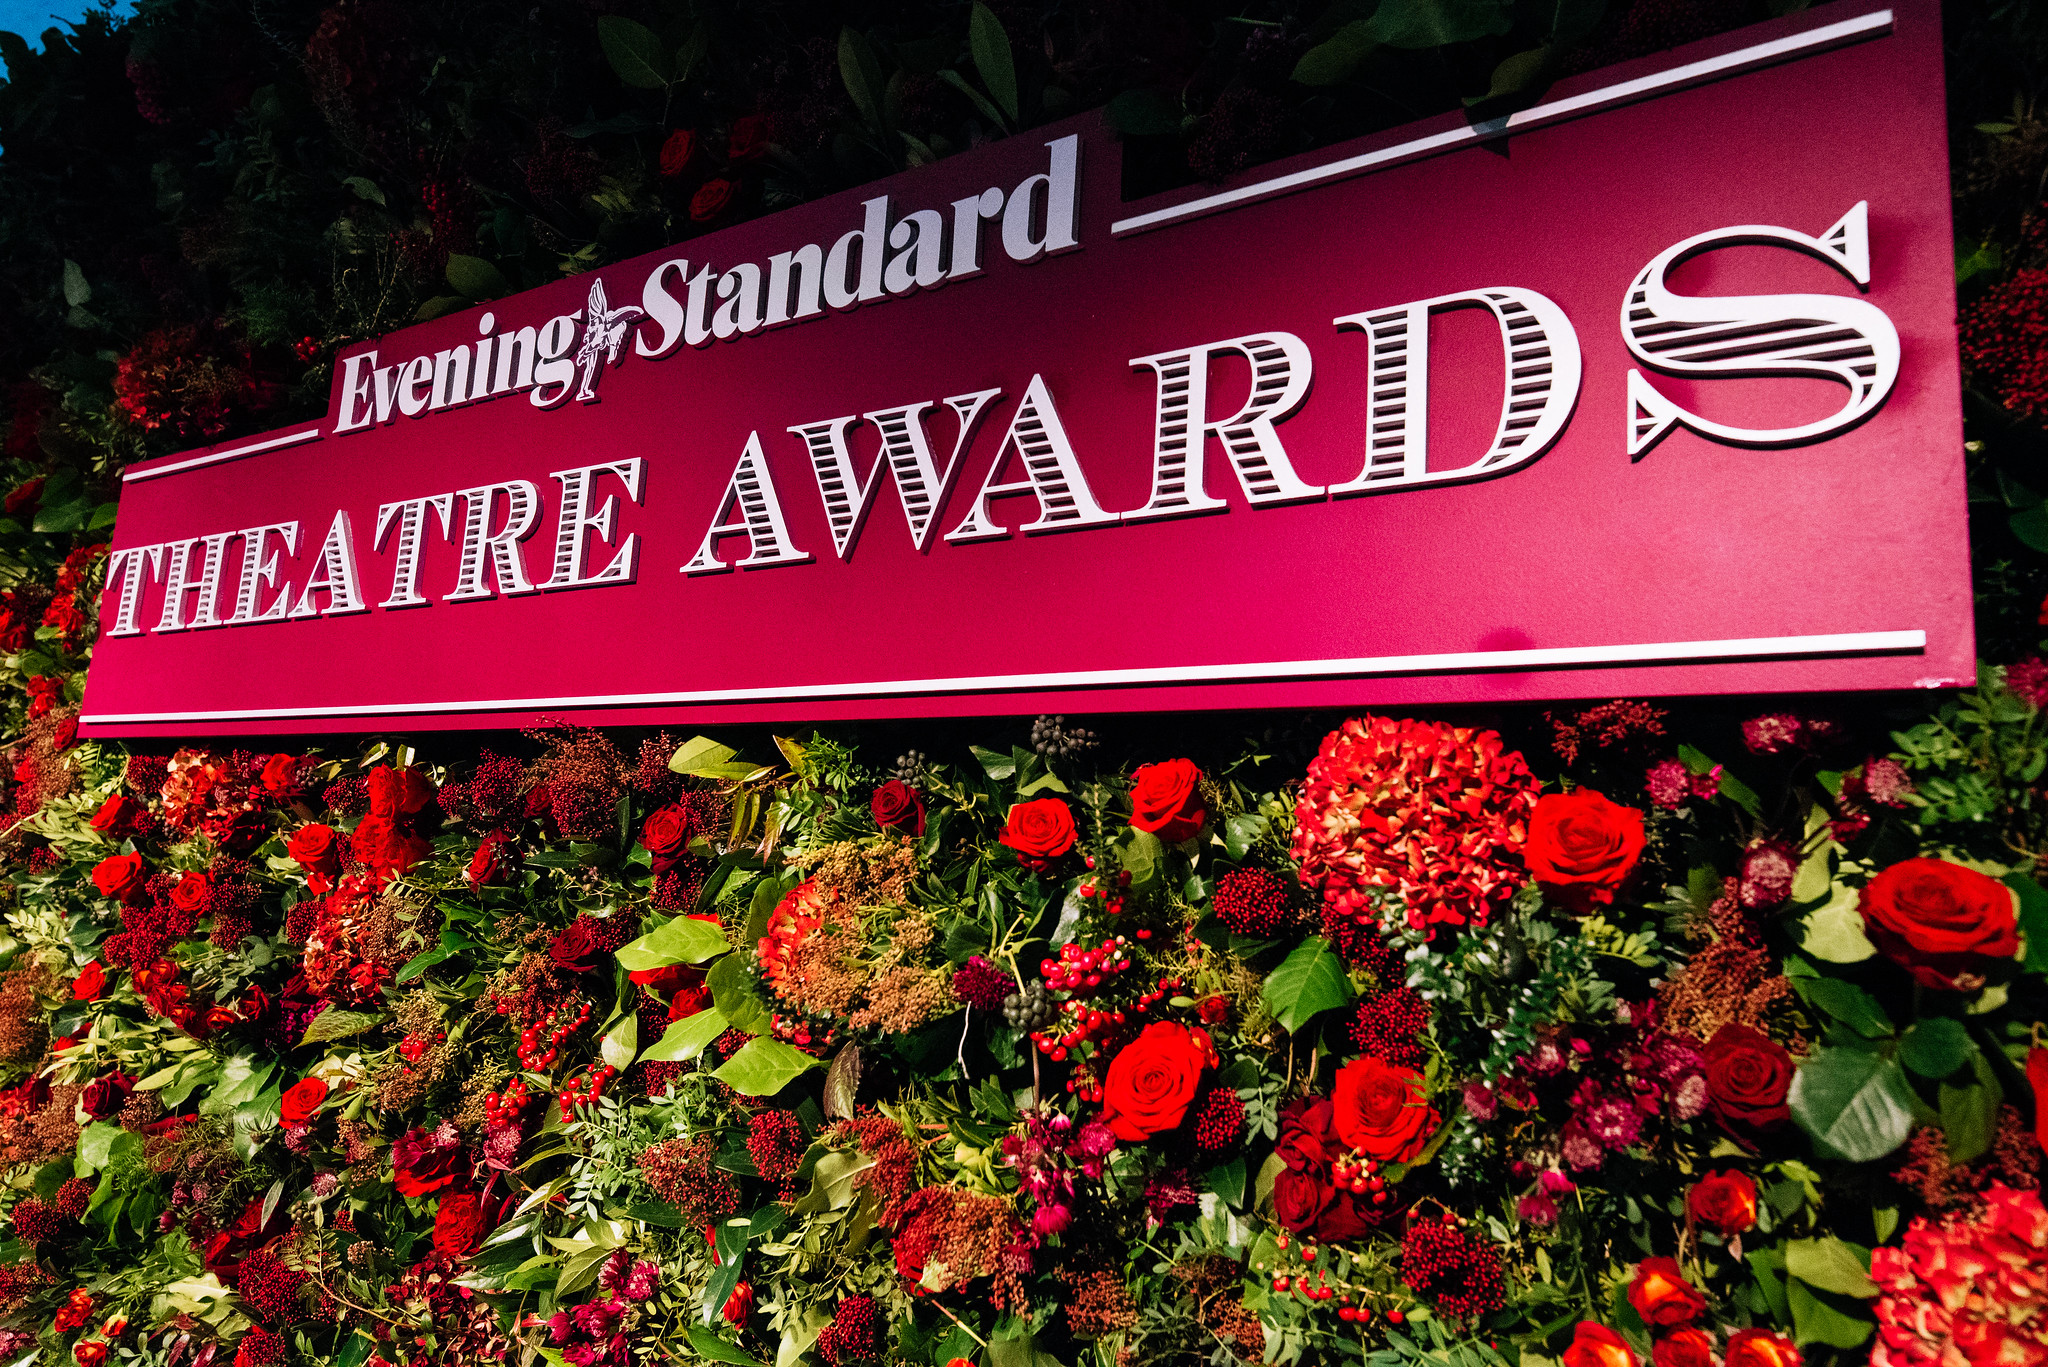 Evening-Standard-Theatre-Awards-1